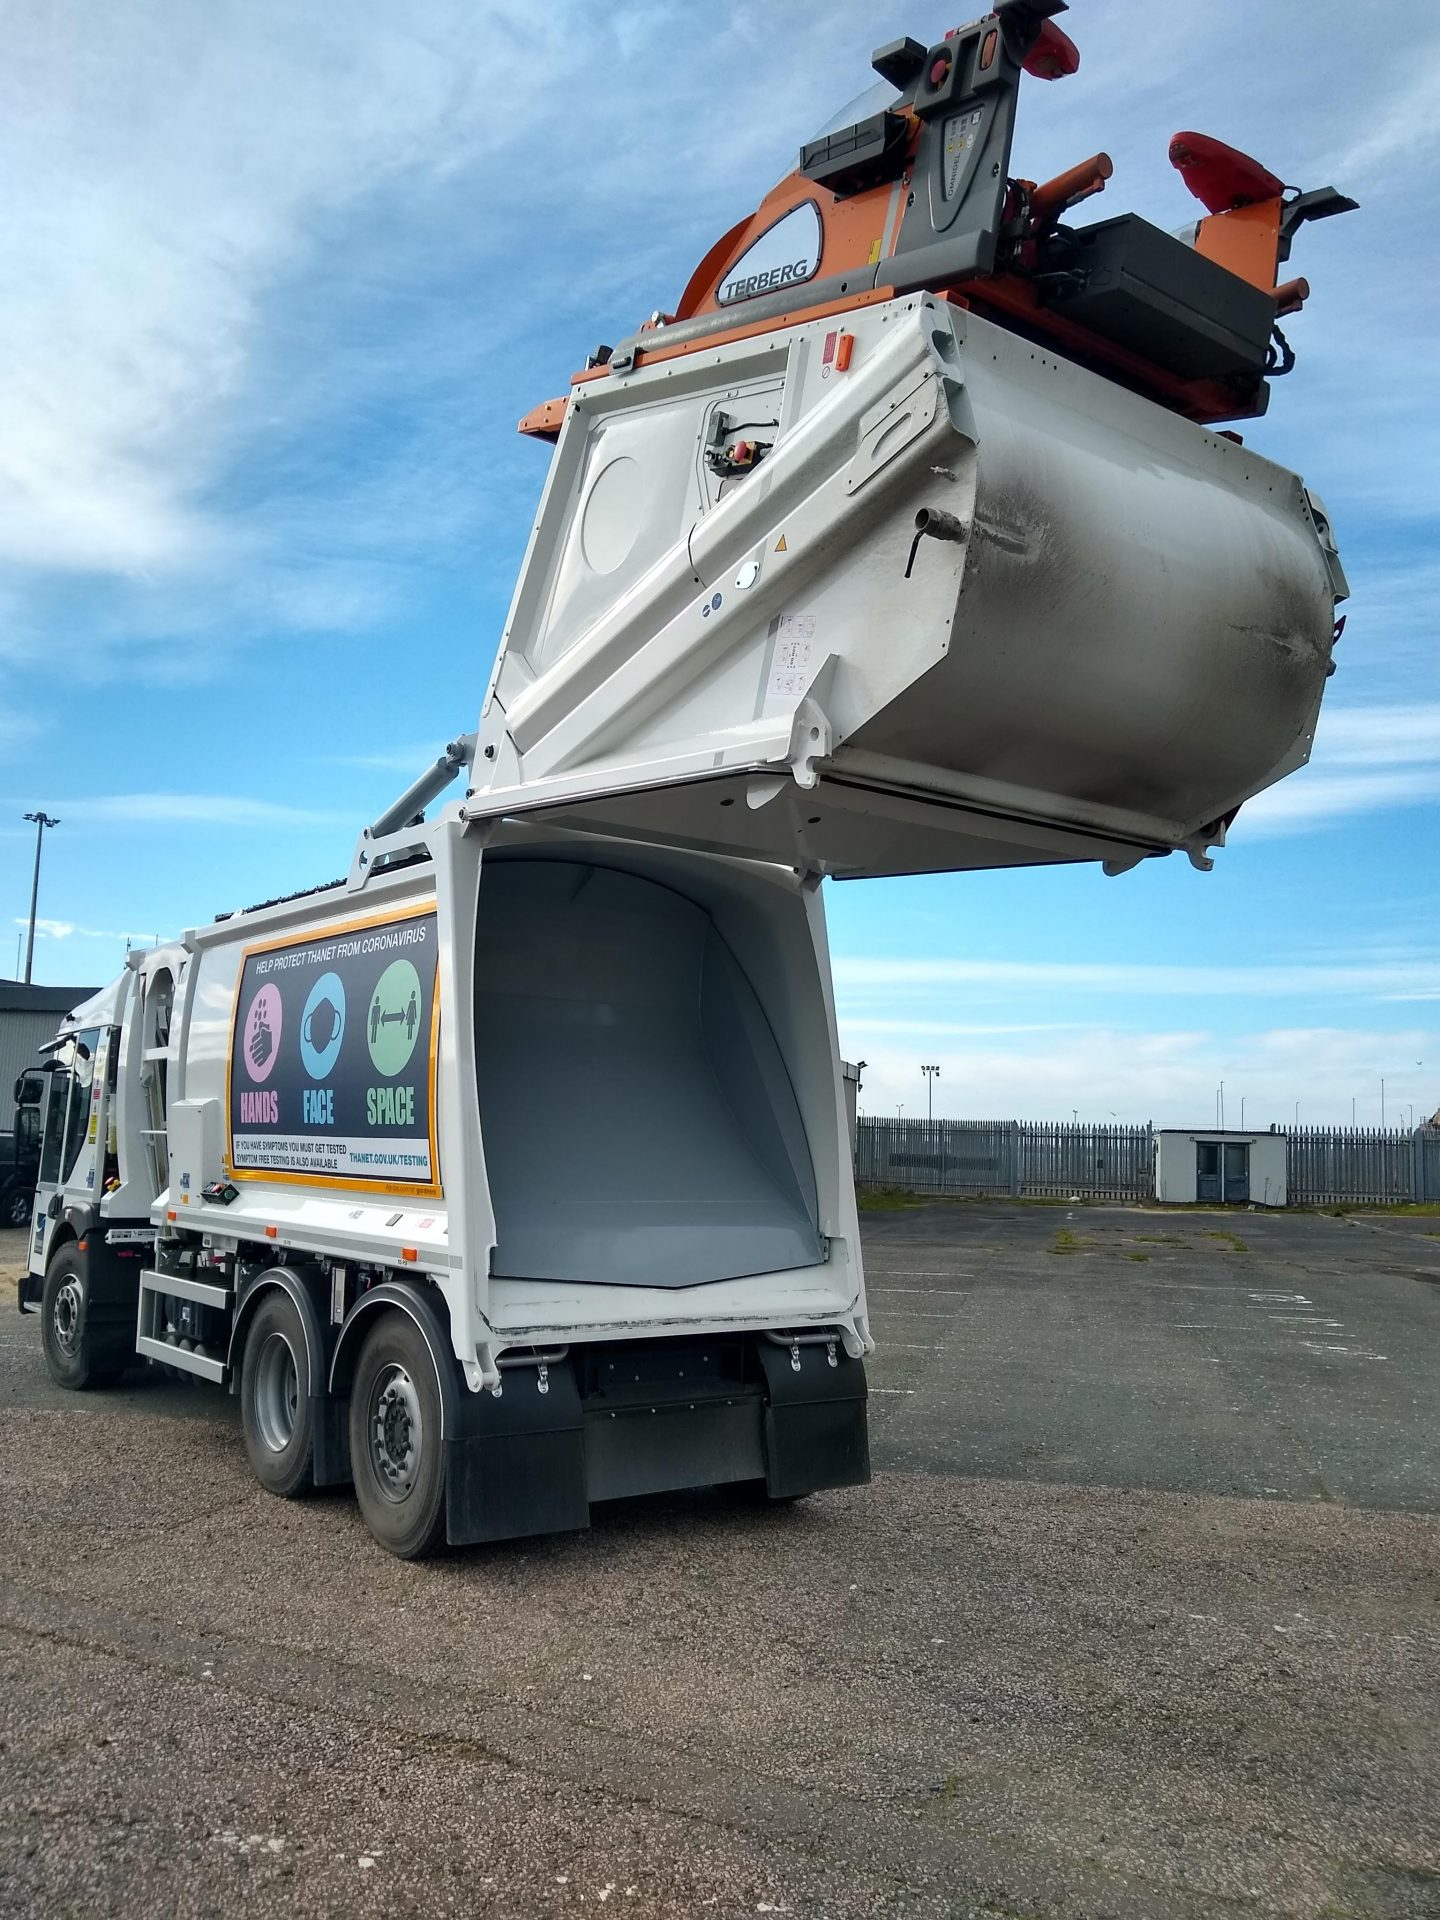 New and improved waste collection vehicles